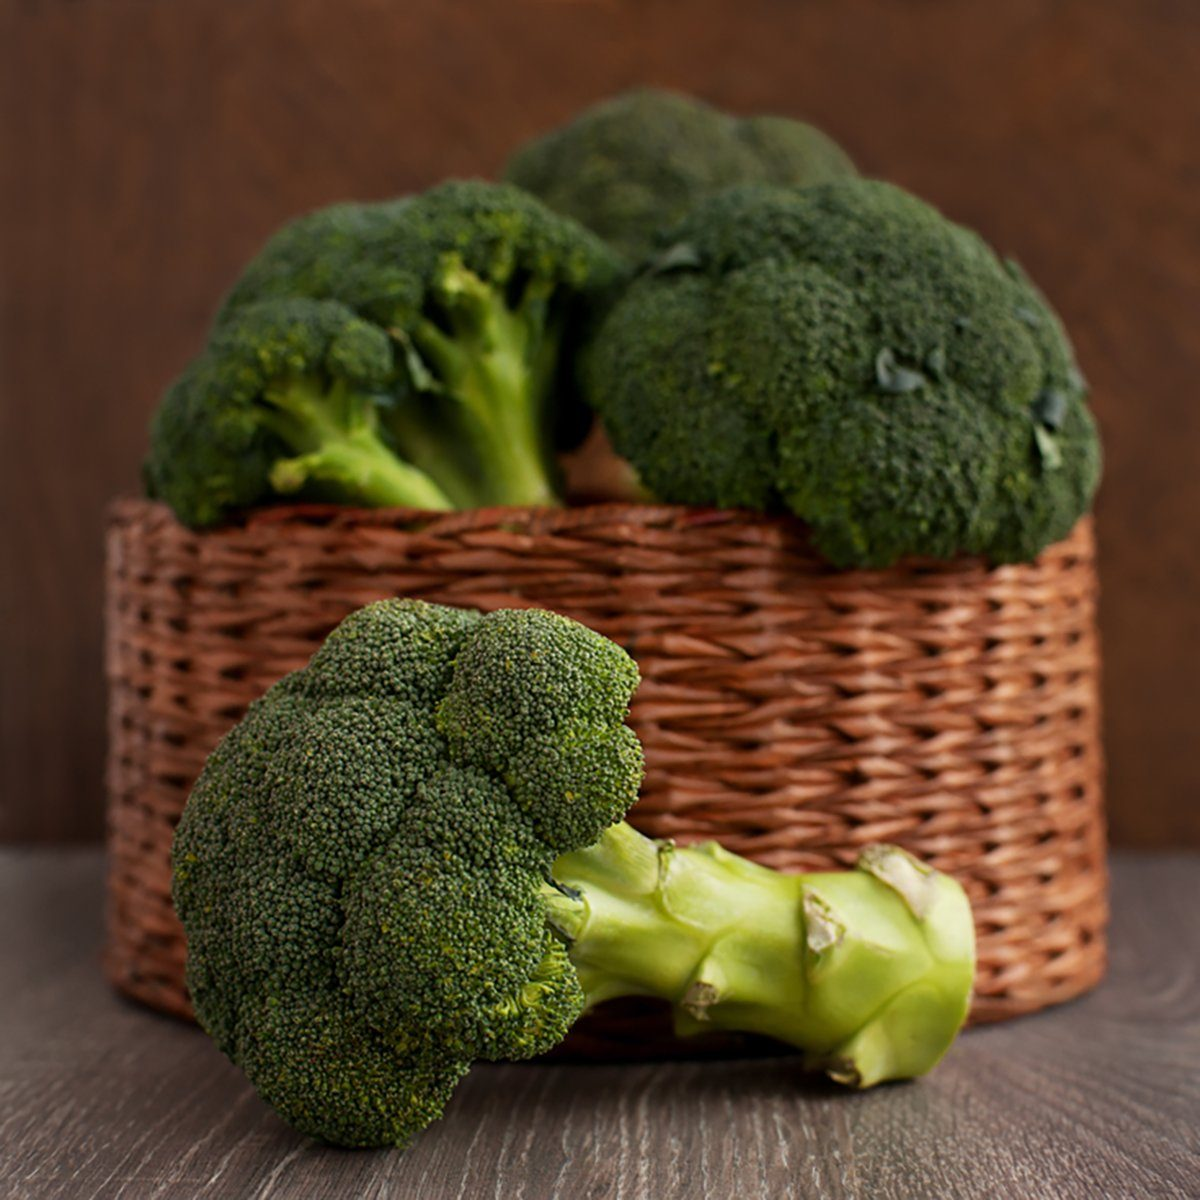 Broccoli cabbage in a wicker basket. A lot of broccoli in a wicker box on a brown background.